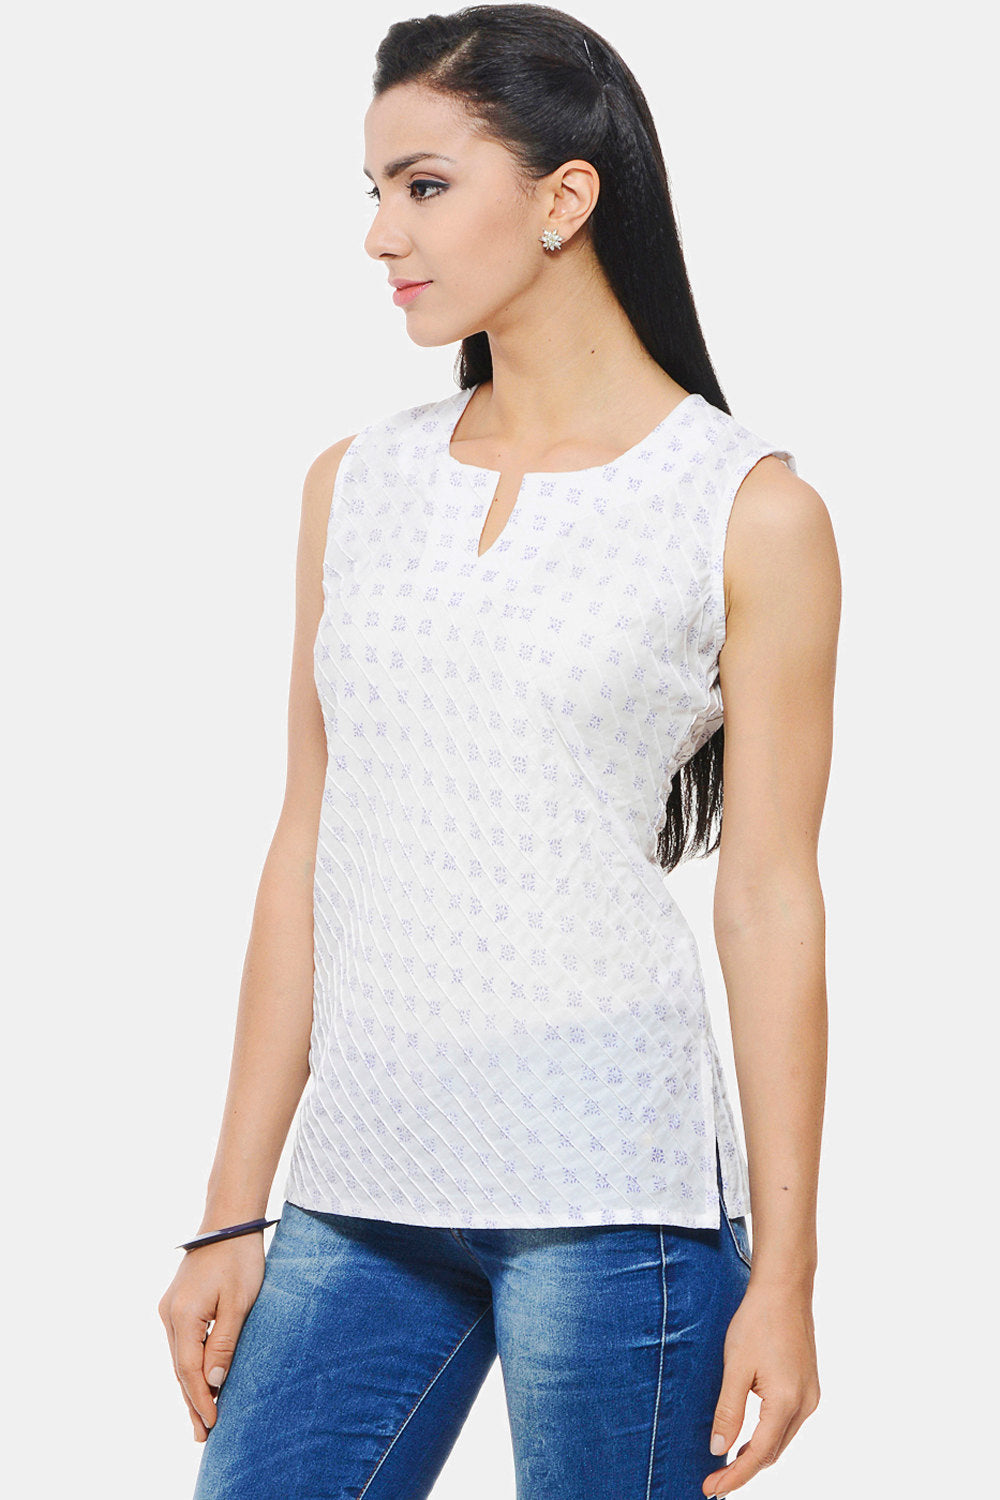 Hand block printed Casual Sleeveless Top / Blouse